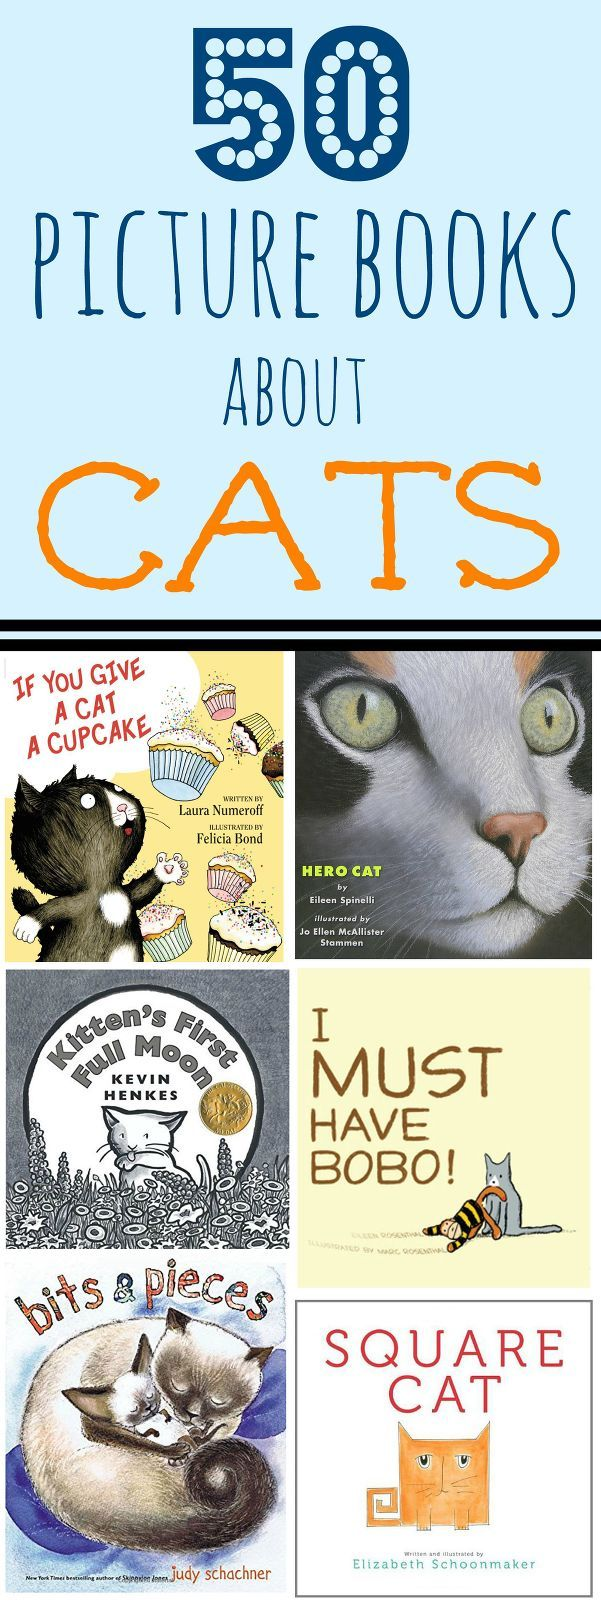 I have been doing a little preschool with my daughter and a few weeks our theme was all about cats. We made some cute paper plate cats, learned that K is for kitten and we read a lot of books about cats. Here is a list of our favorites.